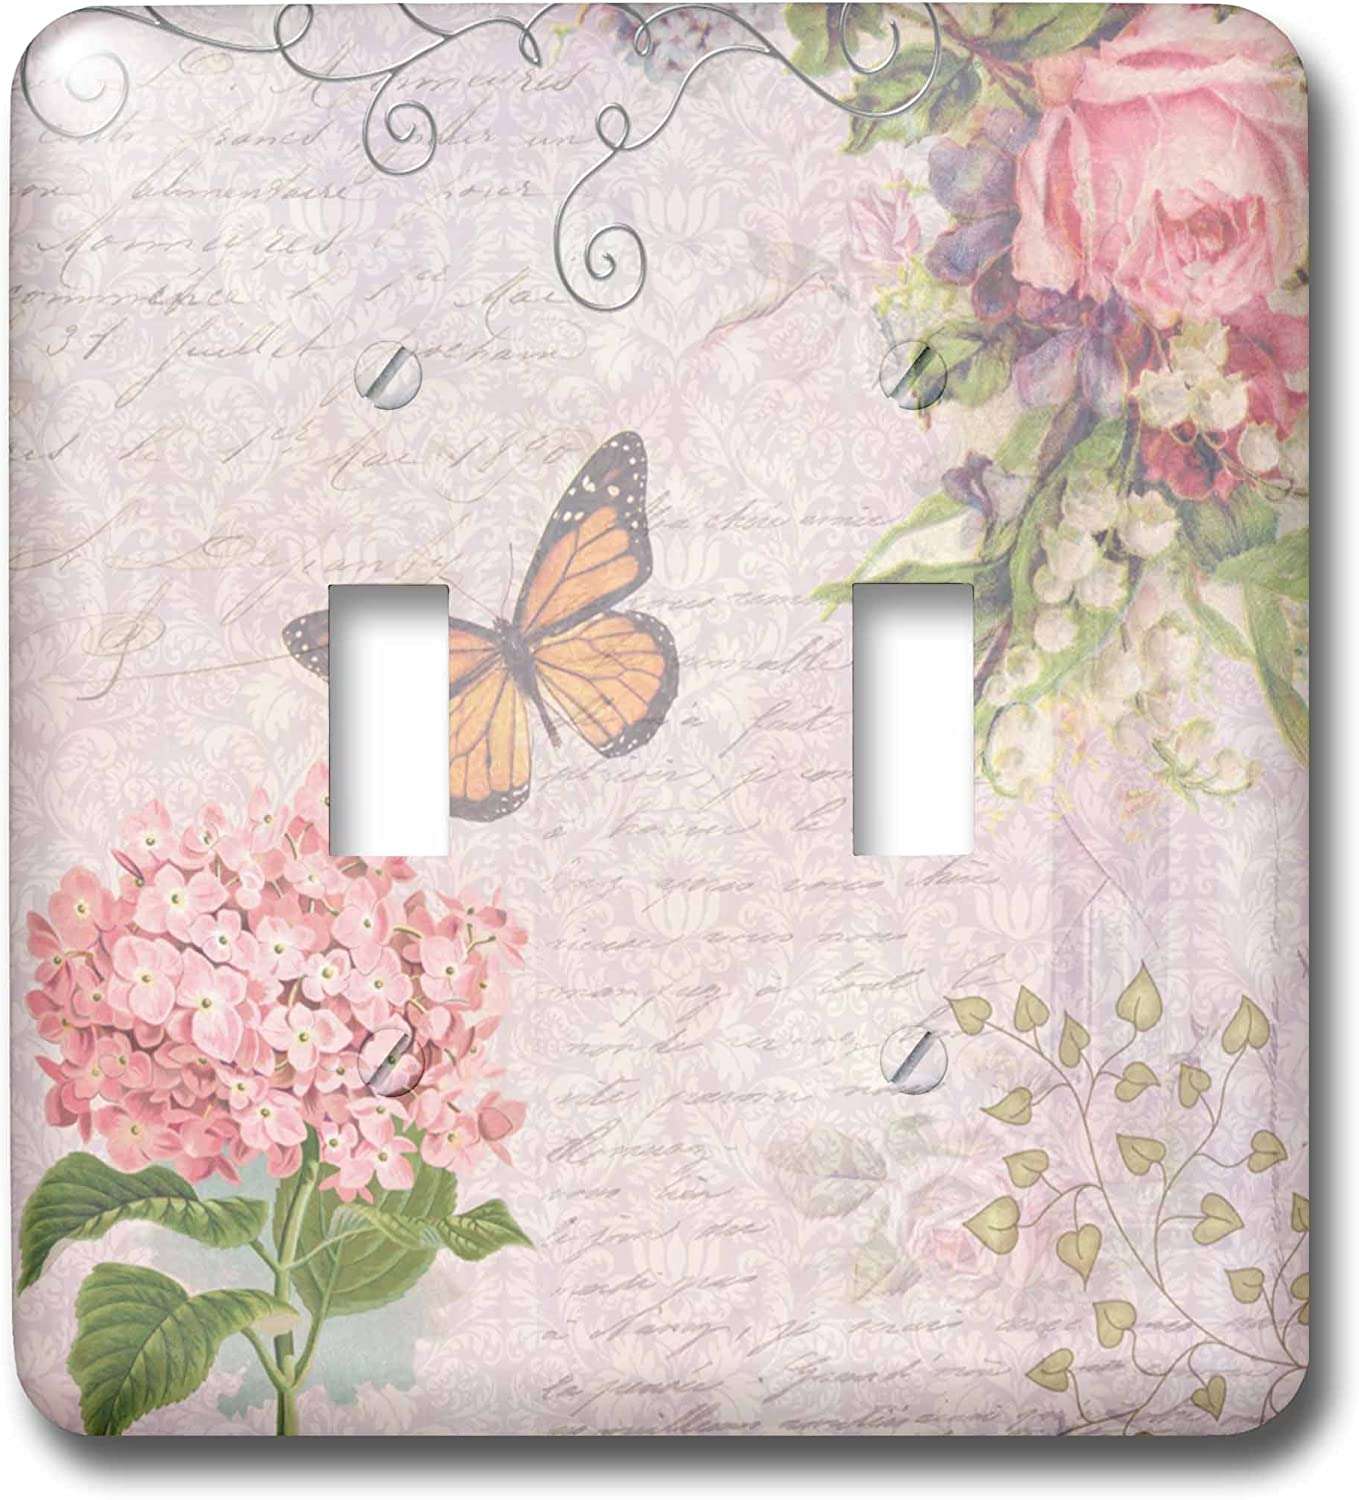 3drose Lsp 76596 2 Vintage Flowers Handwriting And Butterfly Pretty Summer Garden Girly Collage Swirls And Leaves Double Toggle Switch Switch Plates Amazon Com